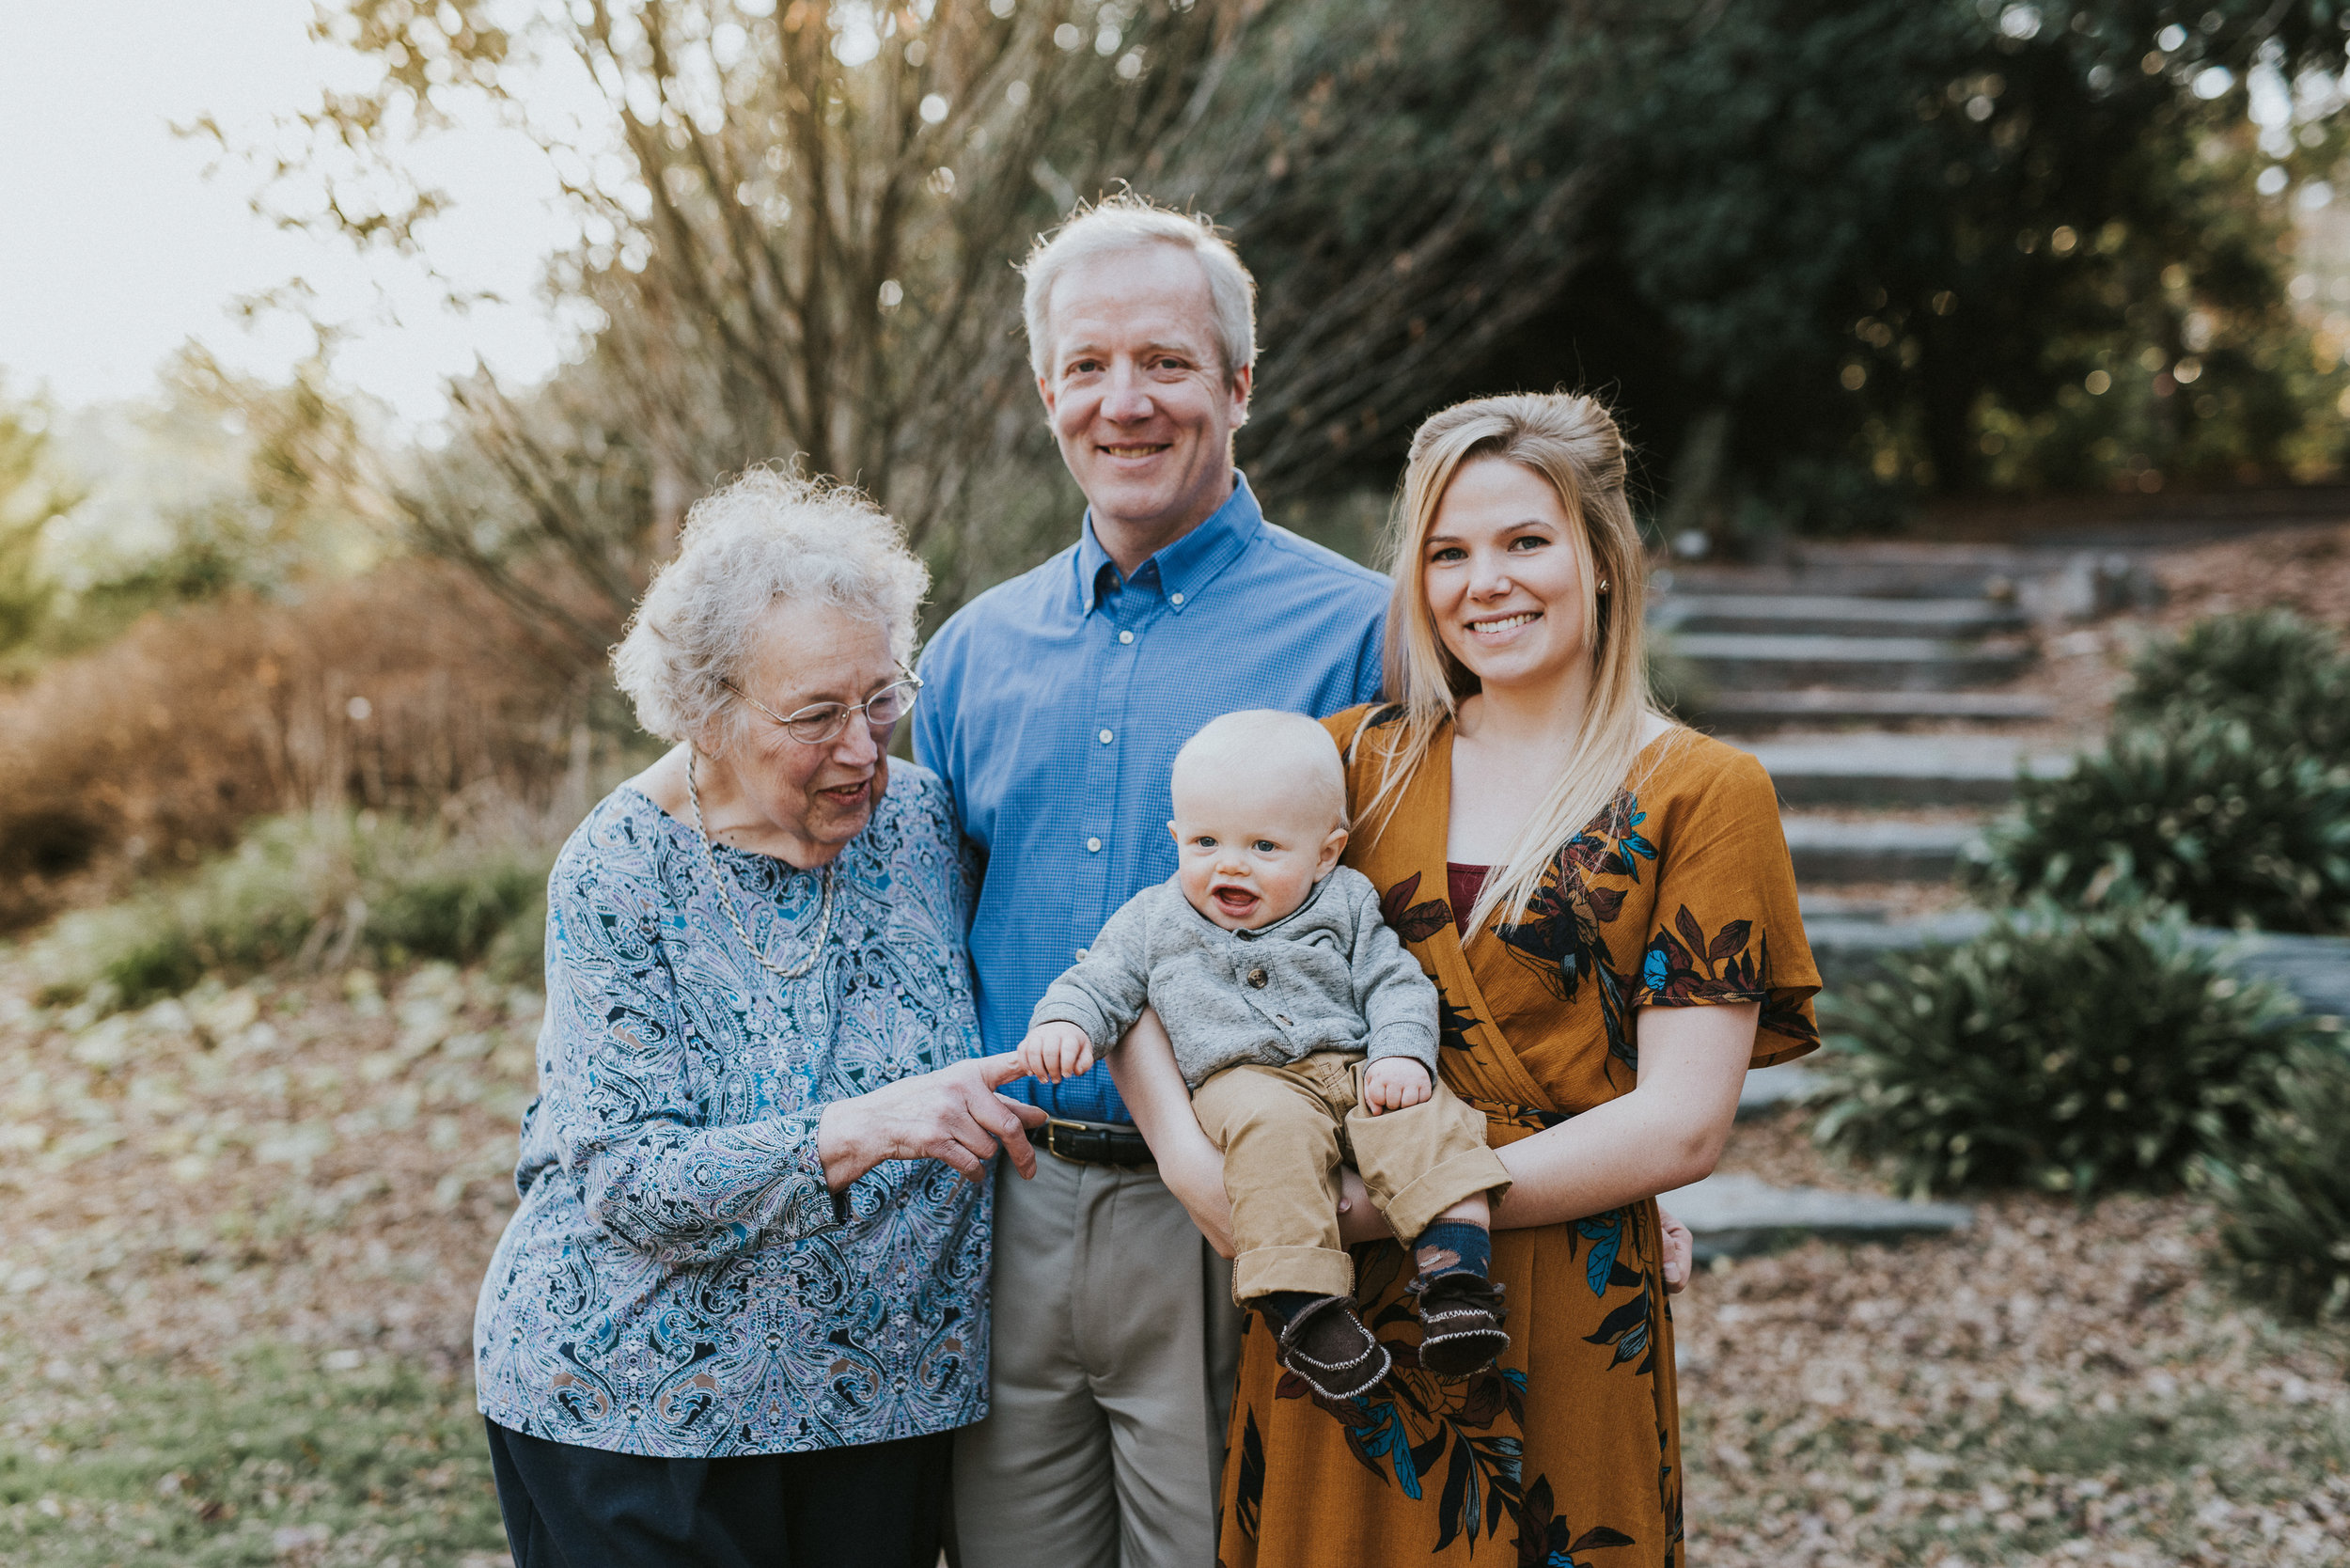 Duke Gardens, Durham North Carolina family portrait session.  Arianna Belle Photography is a North Carolina and Virginia based lifestyle photographer.  Affordable photographer in your area